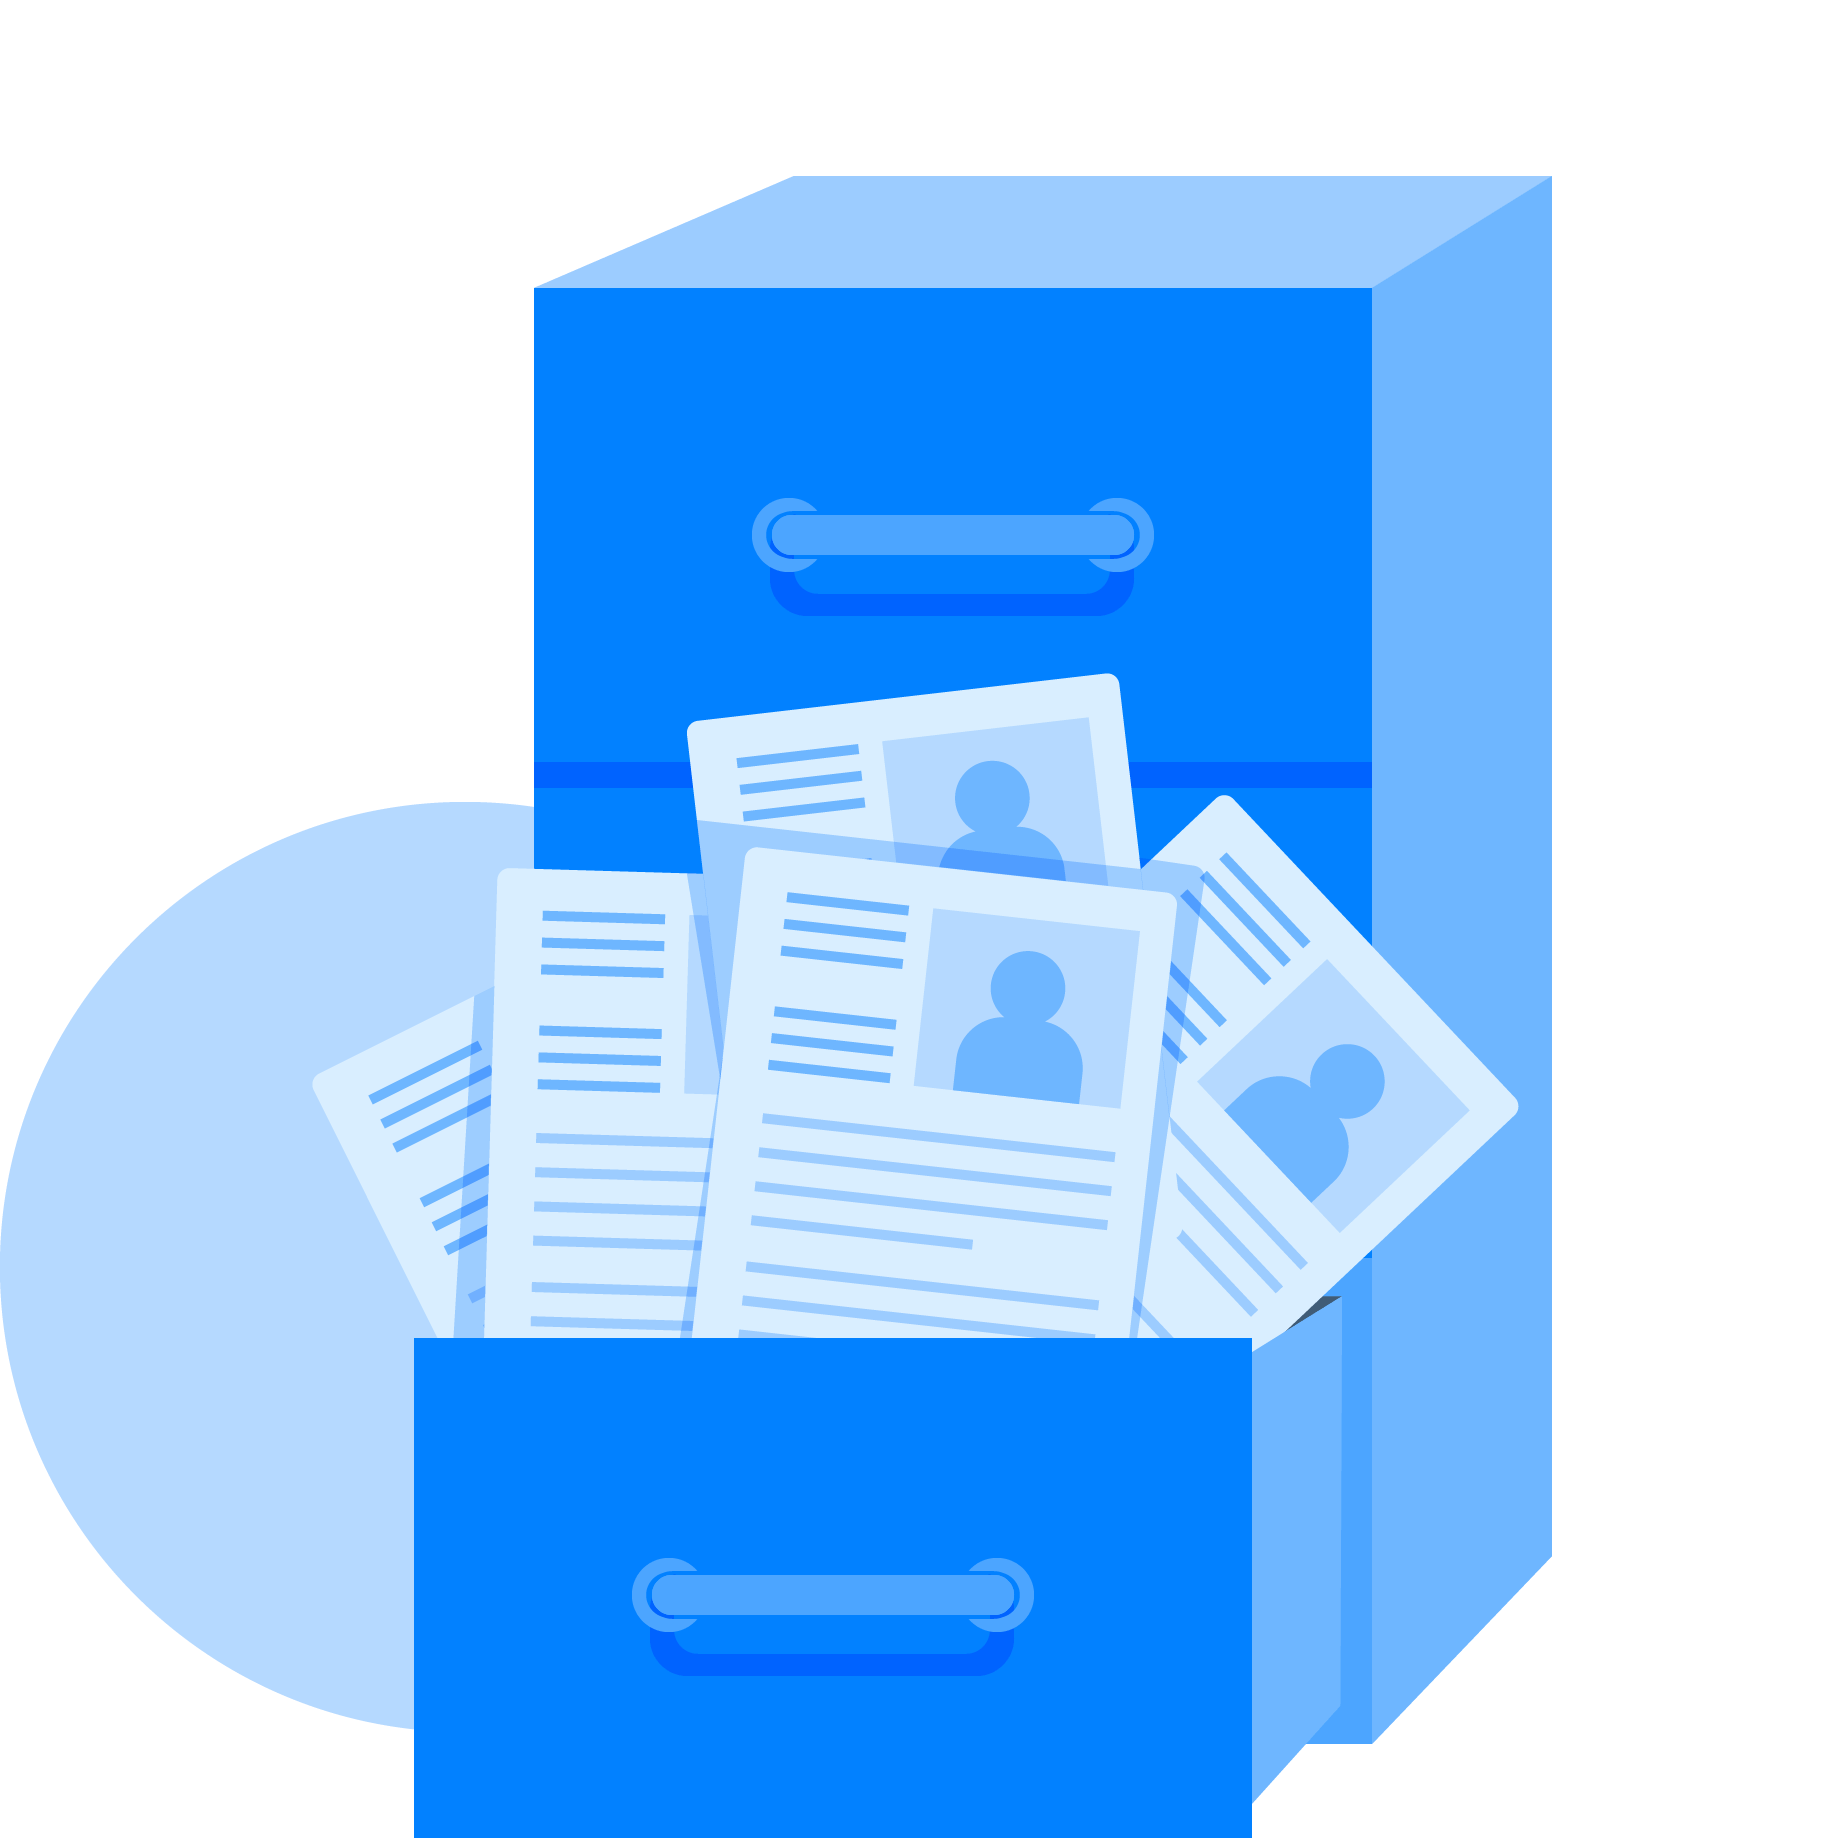 Open file cabinet with resumes and CVs popping out